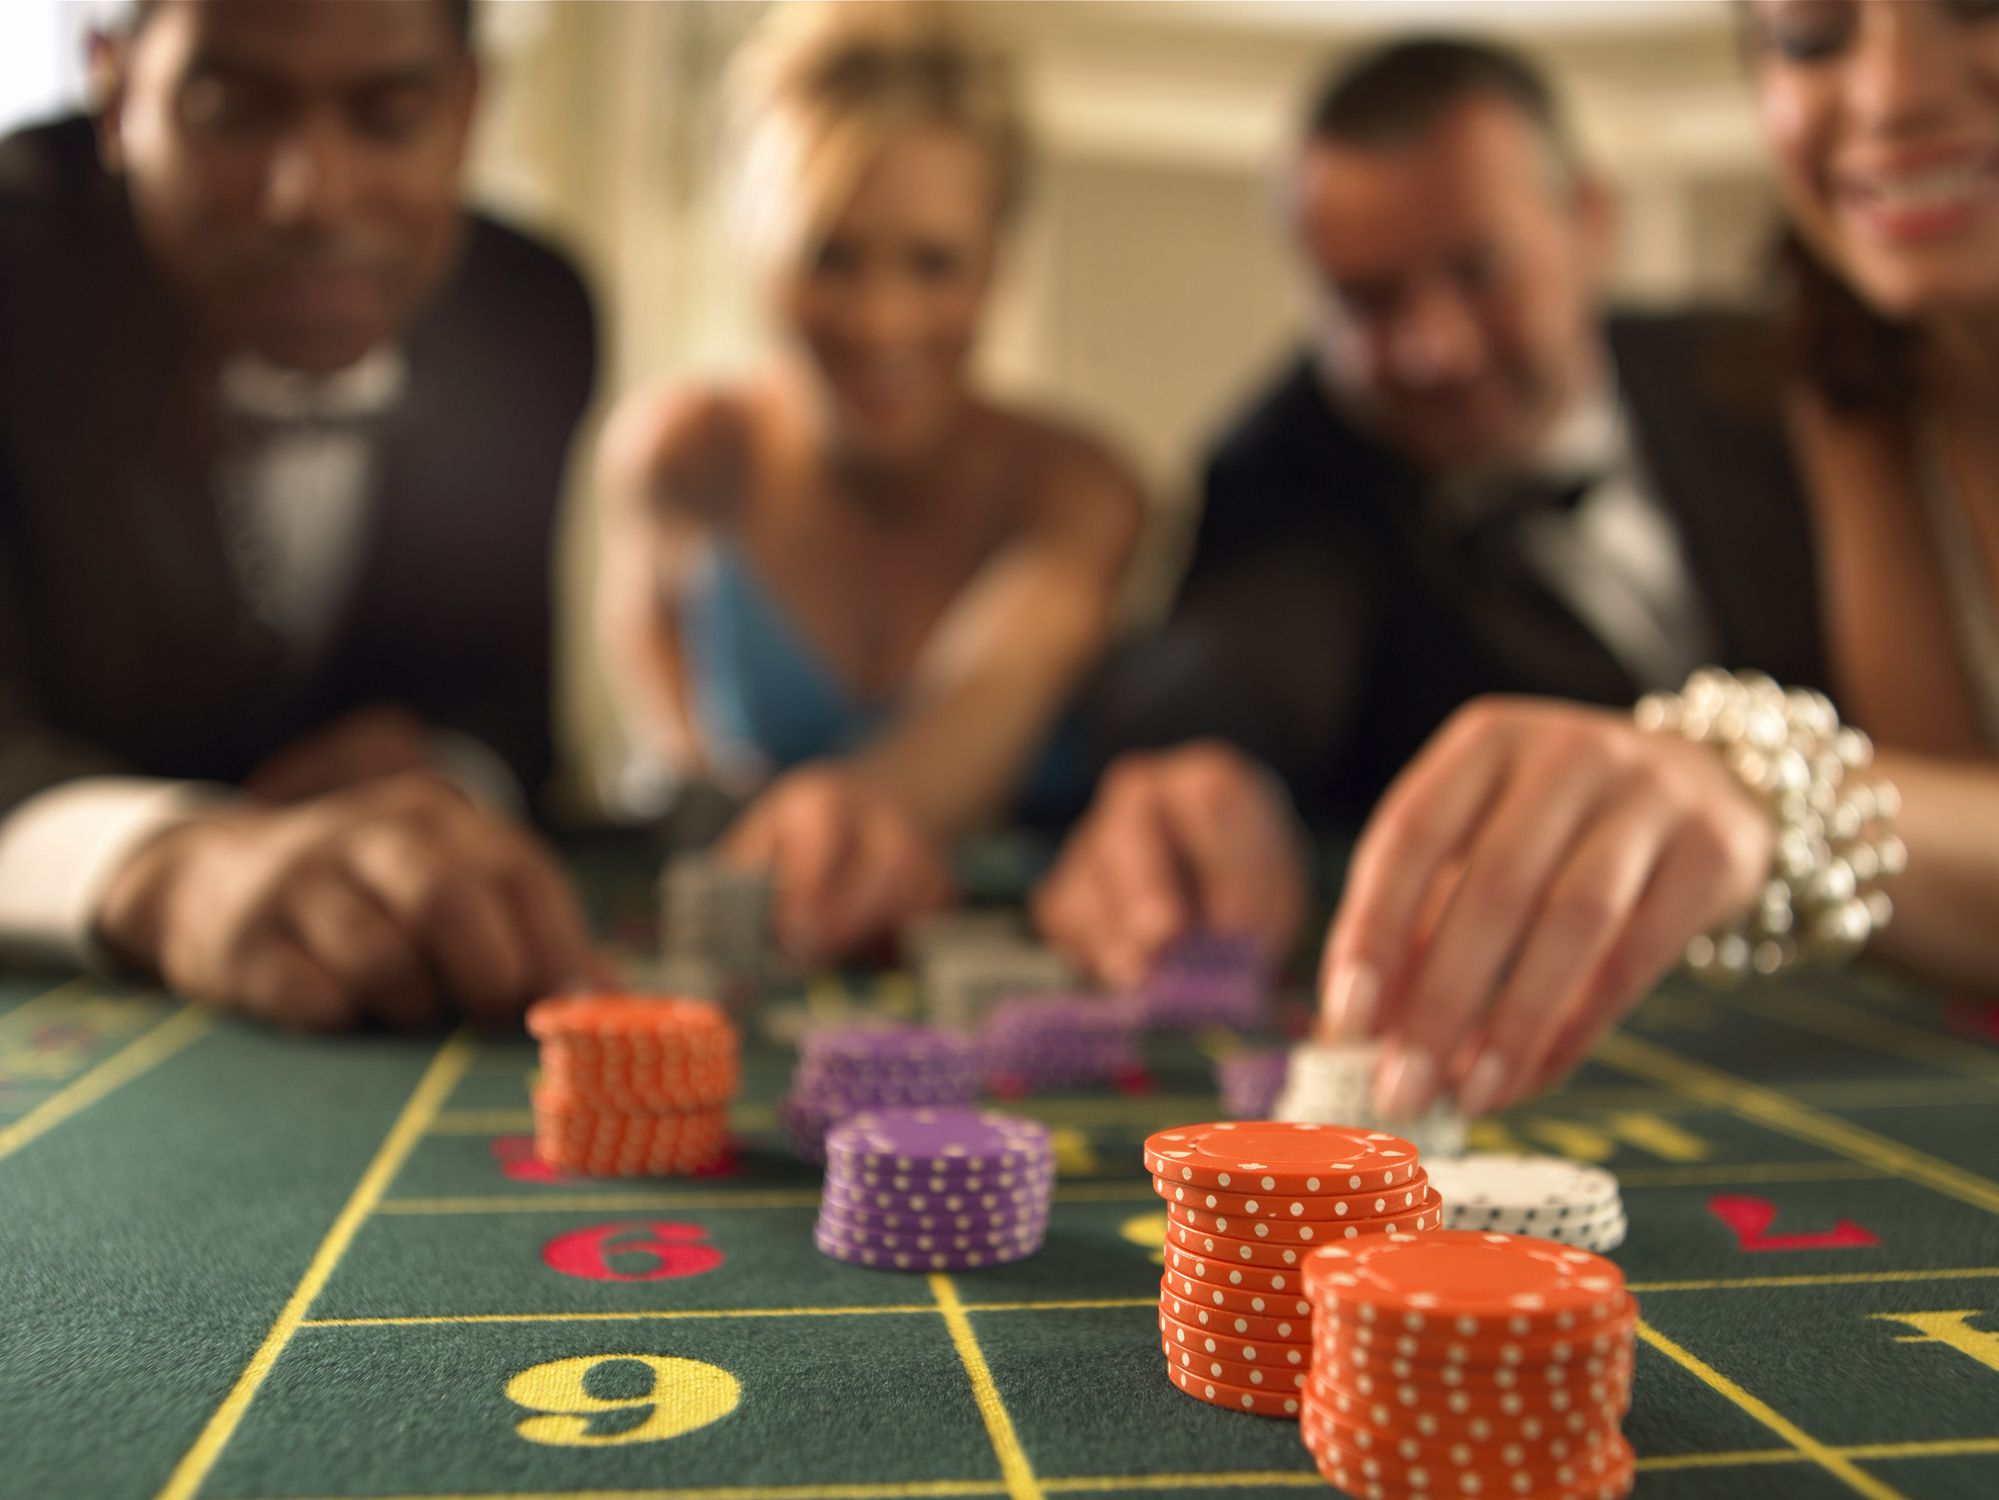 Nov 21, · Blacklisted Online Casinos [Updated ] - Report a casino.These casinos have failed to meet expectations.Learn how to spot & avoid playing at these sites.